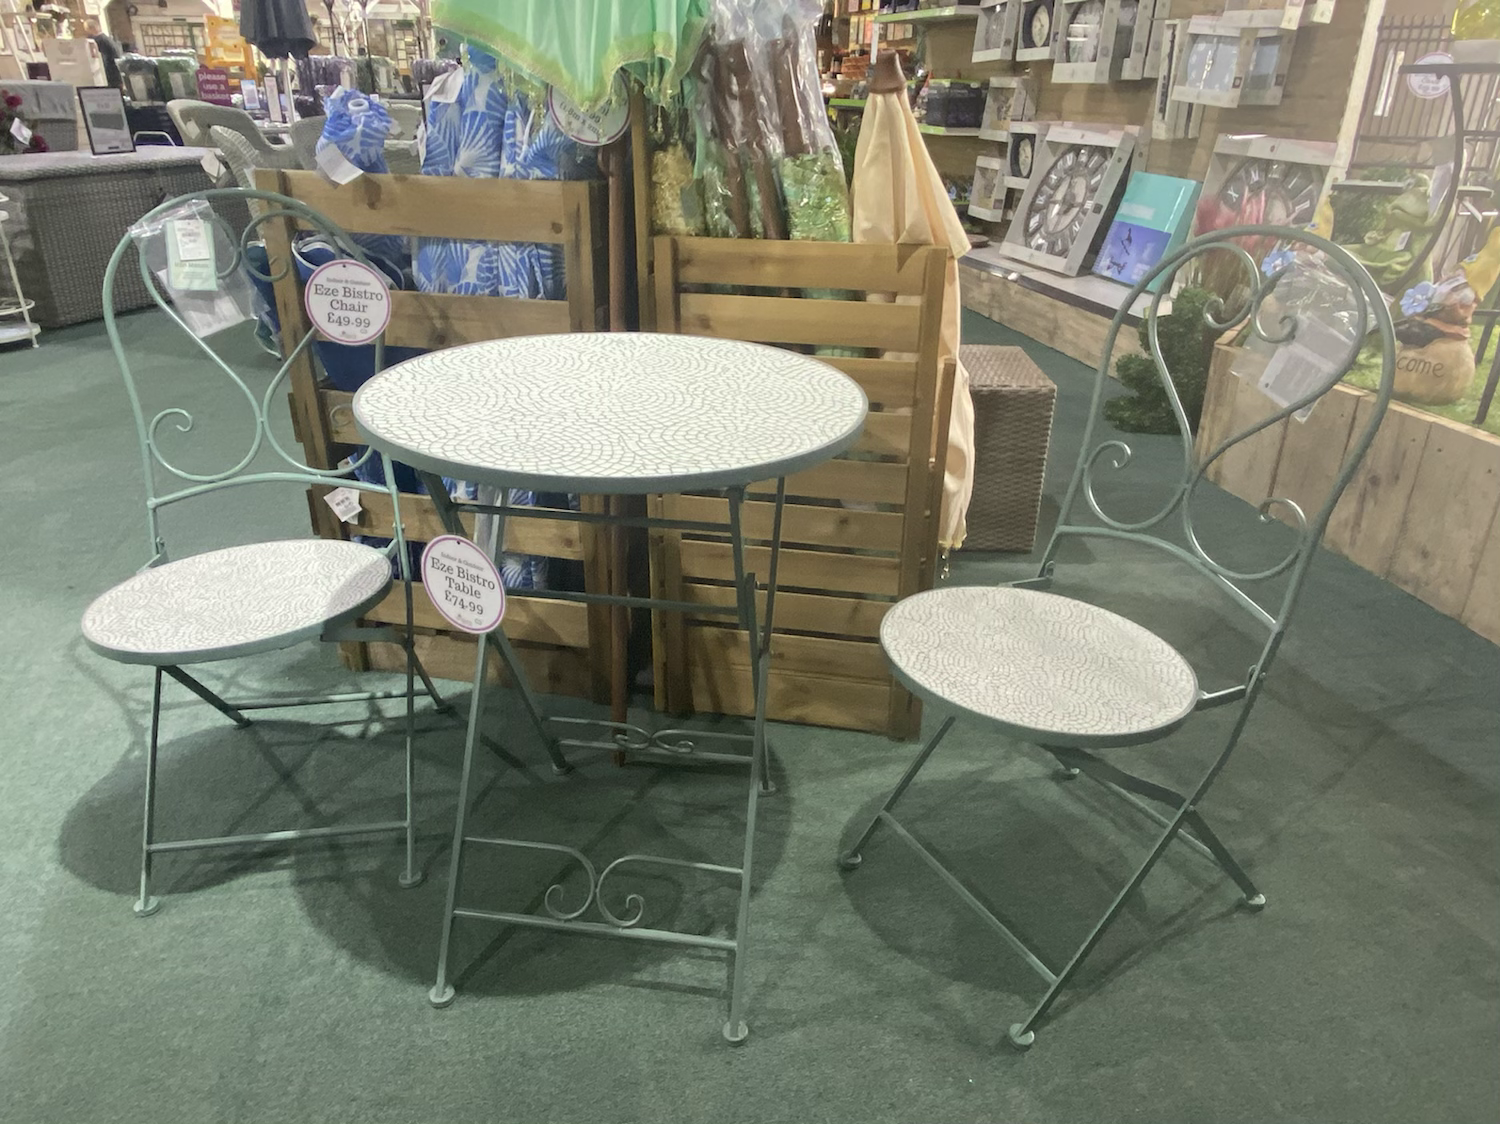 Eze Bistro Table - £74.99. Chair - £49.99